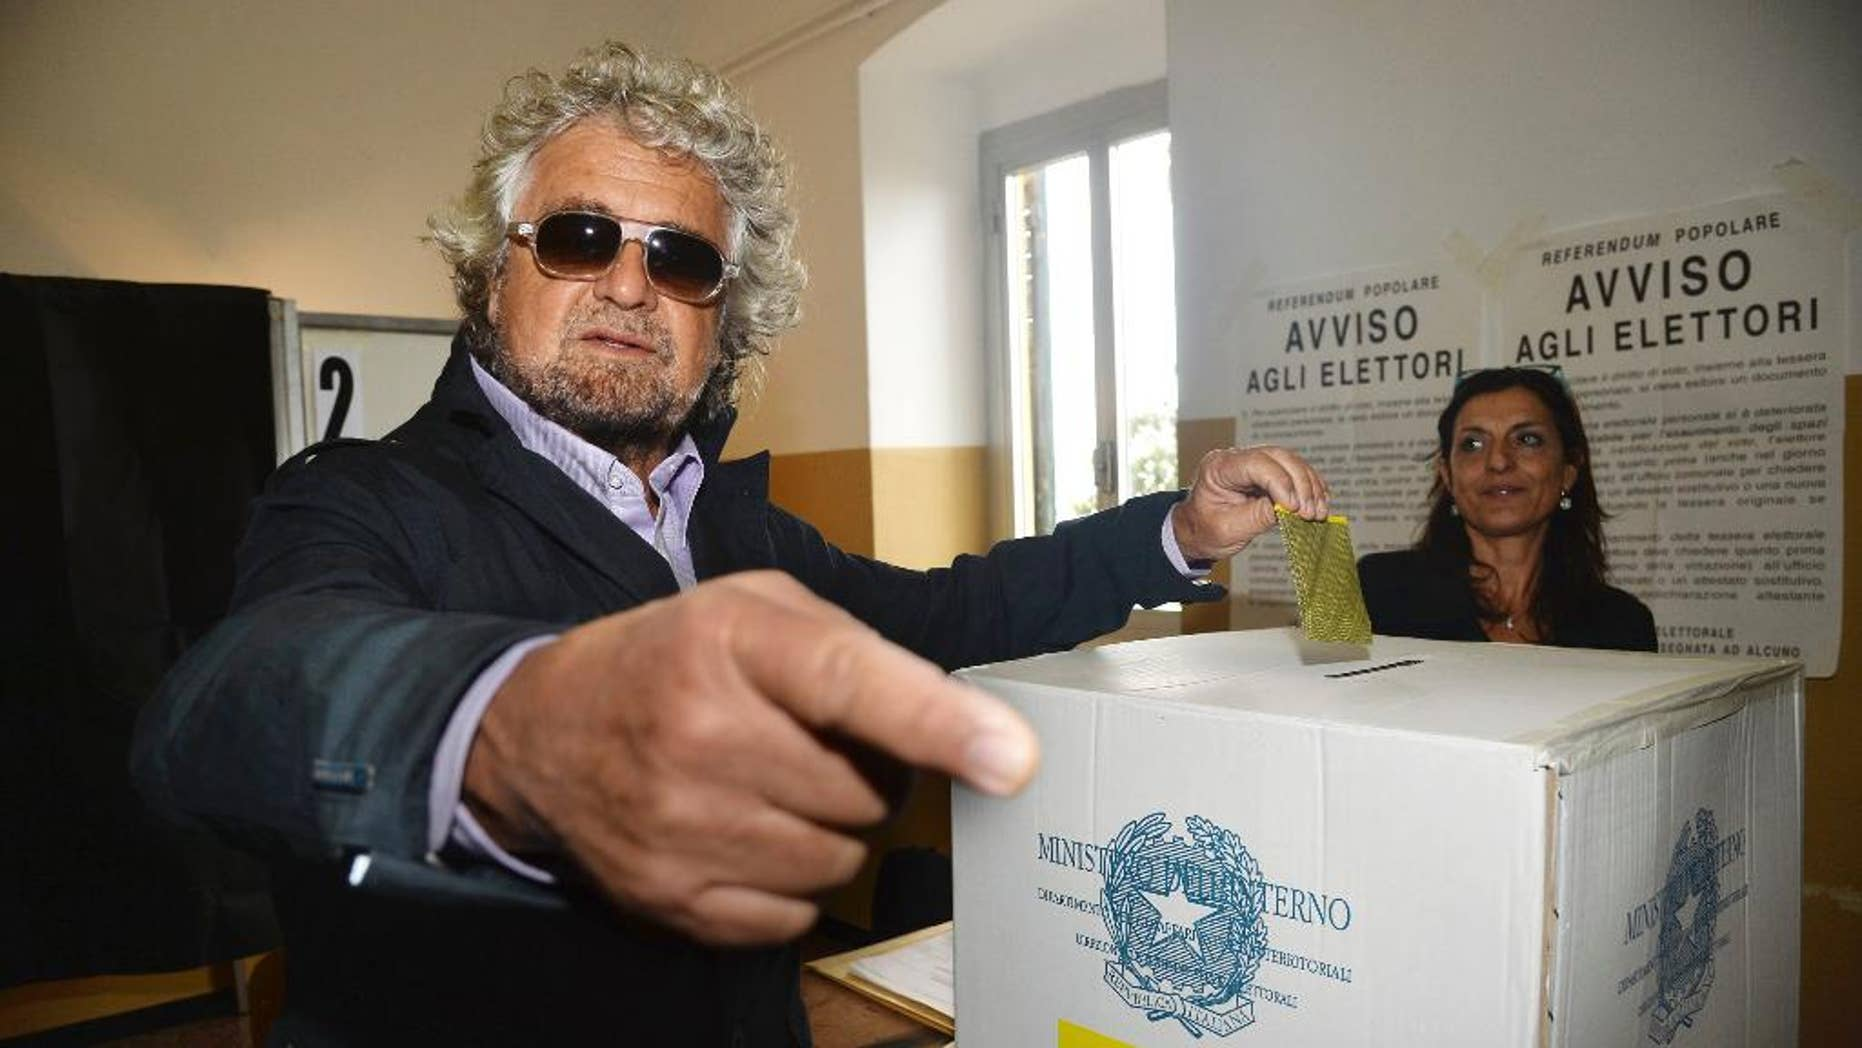 Co-founder of 5-Star Movement Beppe Grillo casts his ballot for a referendum on the duration of offshore drilling concessions, in Rome, Sunday, April 17, 2016. Italians are voting in a referendum on the duration of offshore drilling concessions in territorial waters, as nine regional governments seek to wrestle some influence over energy policy away from the central government in Rome. (Luca Zennaro/ANSA via AP)